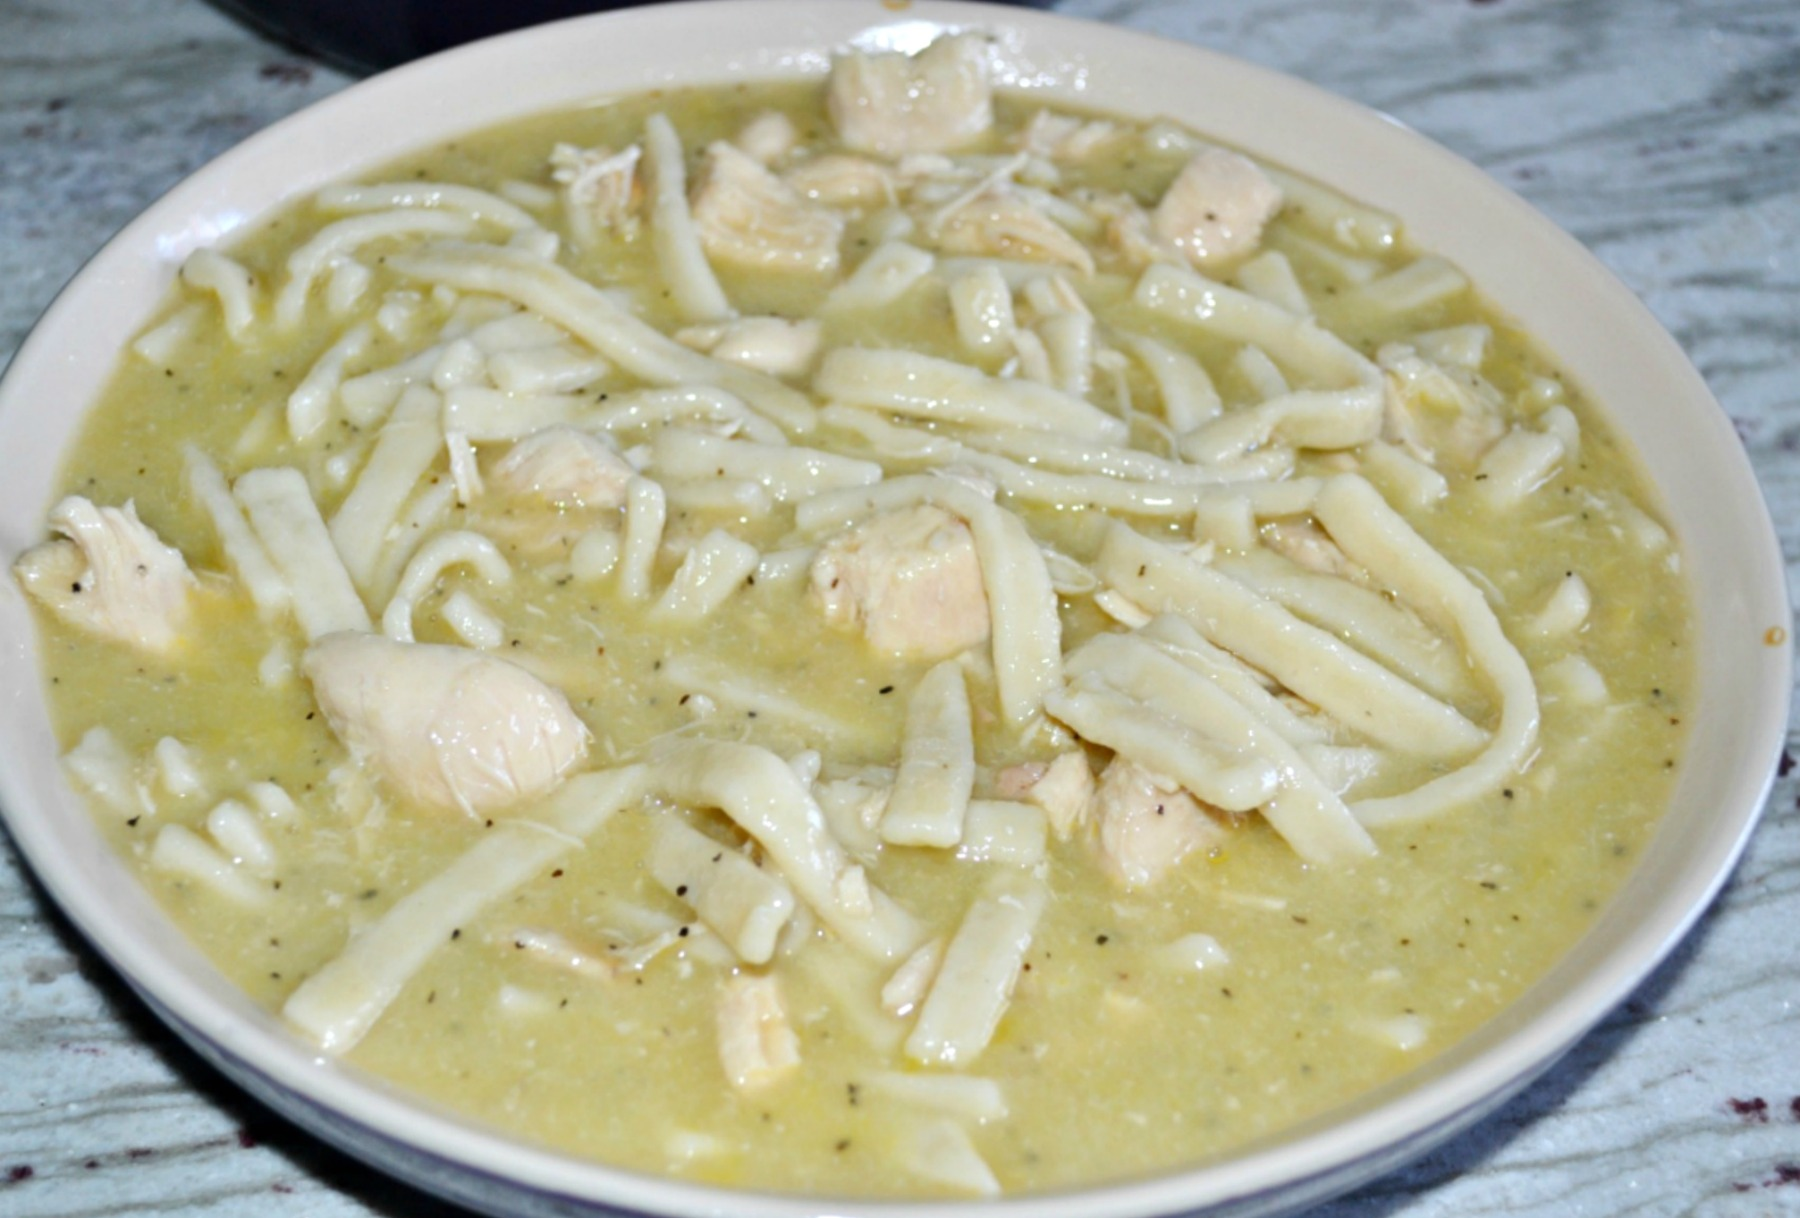 homestyle noodles, chicken and noodles, reames, chicken soup, chicken broth